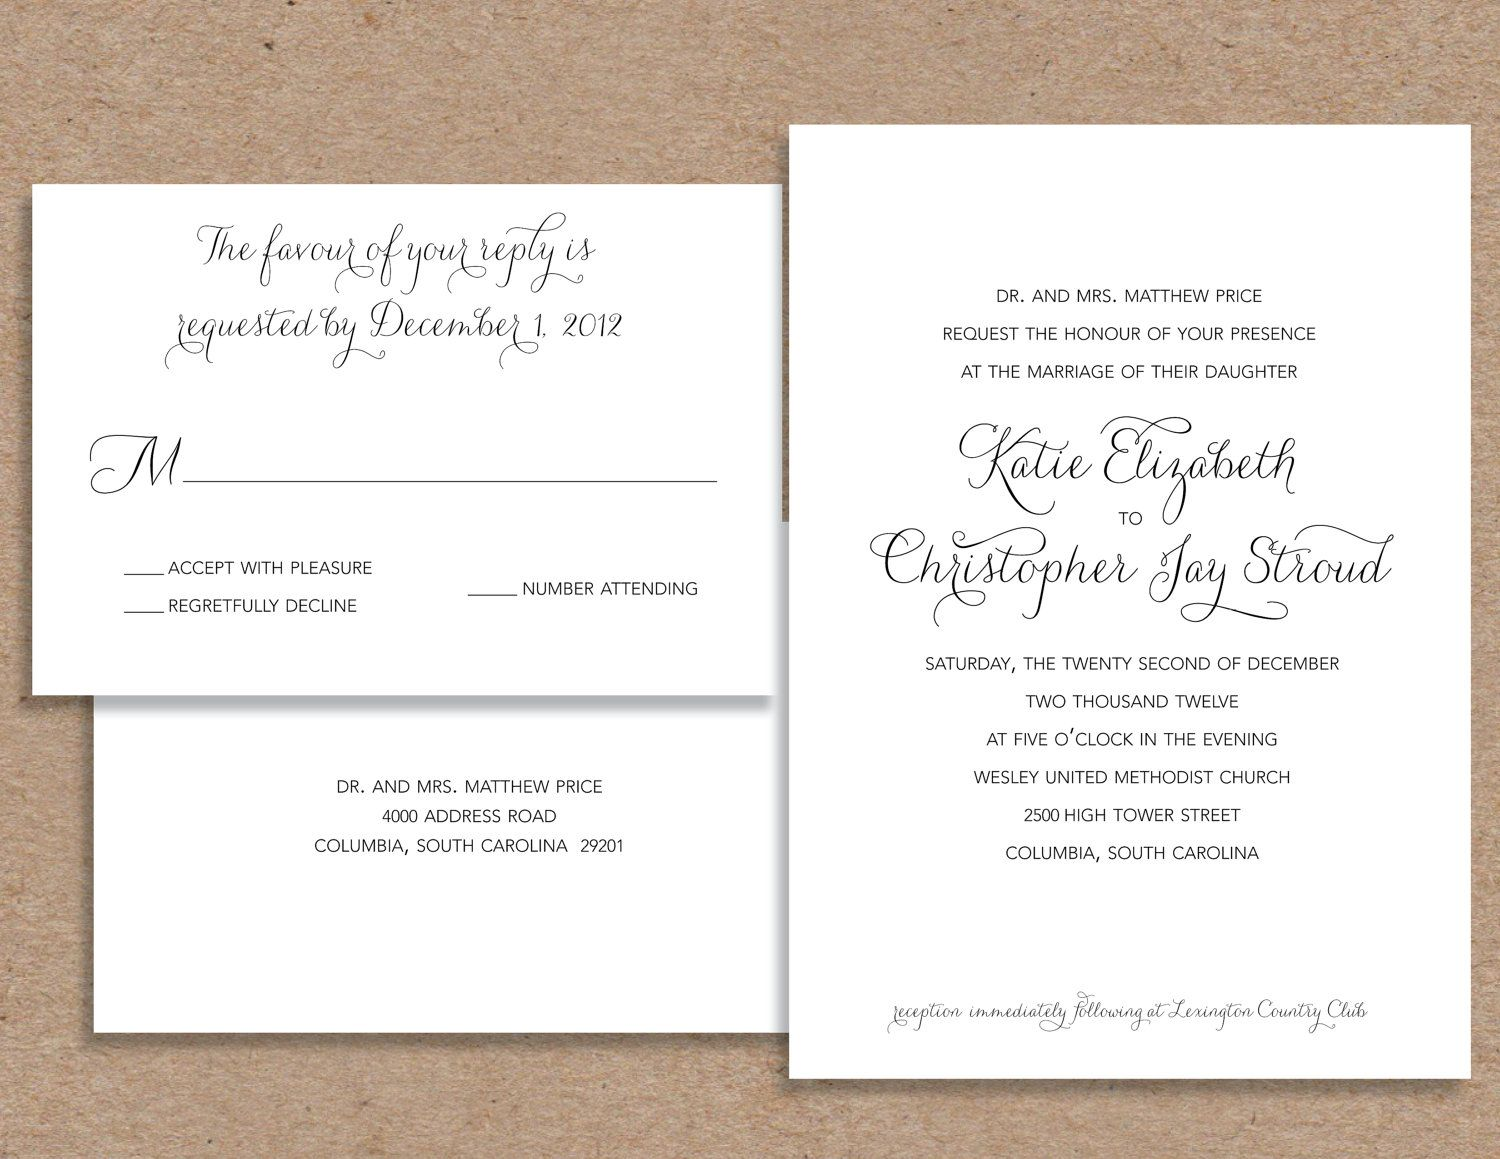 Wedding Invitation Verses Everything You Need To Know: Wording For Couple Wedding Invitation